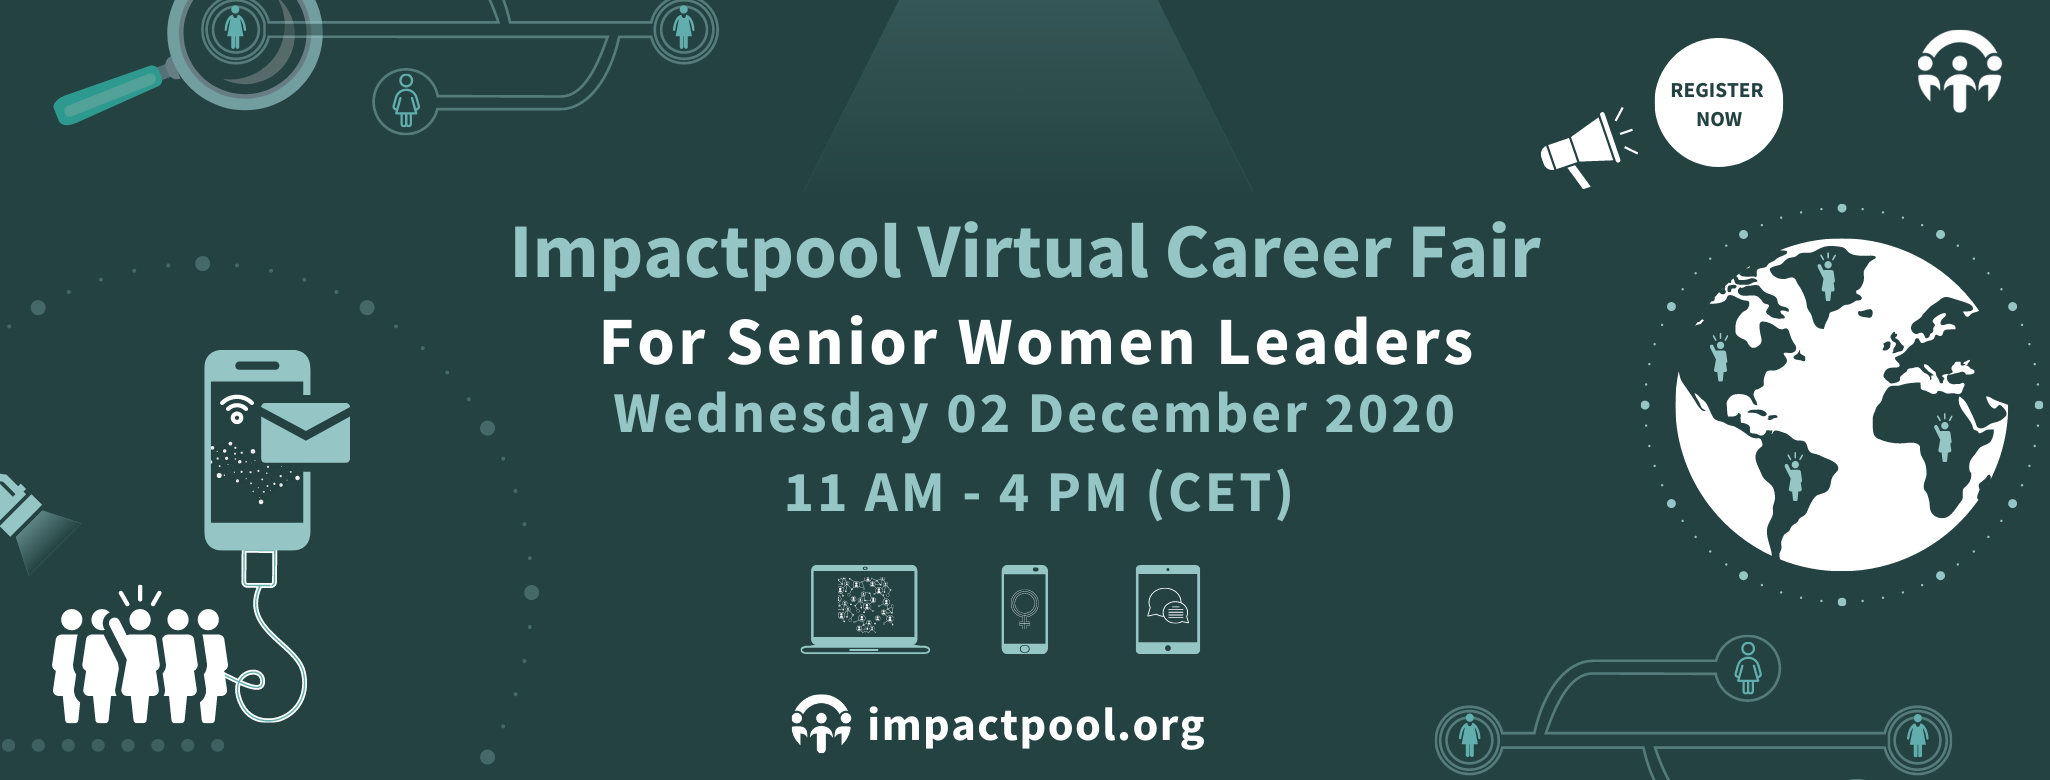 Impactpool virtual career fair for senior women 4908314f b3e0 4bc4 9de1 9d0943531e0a